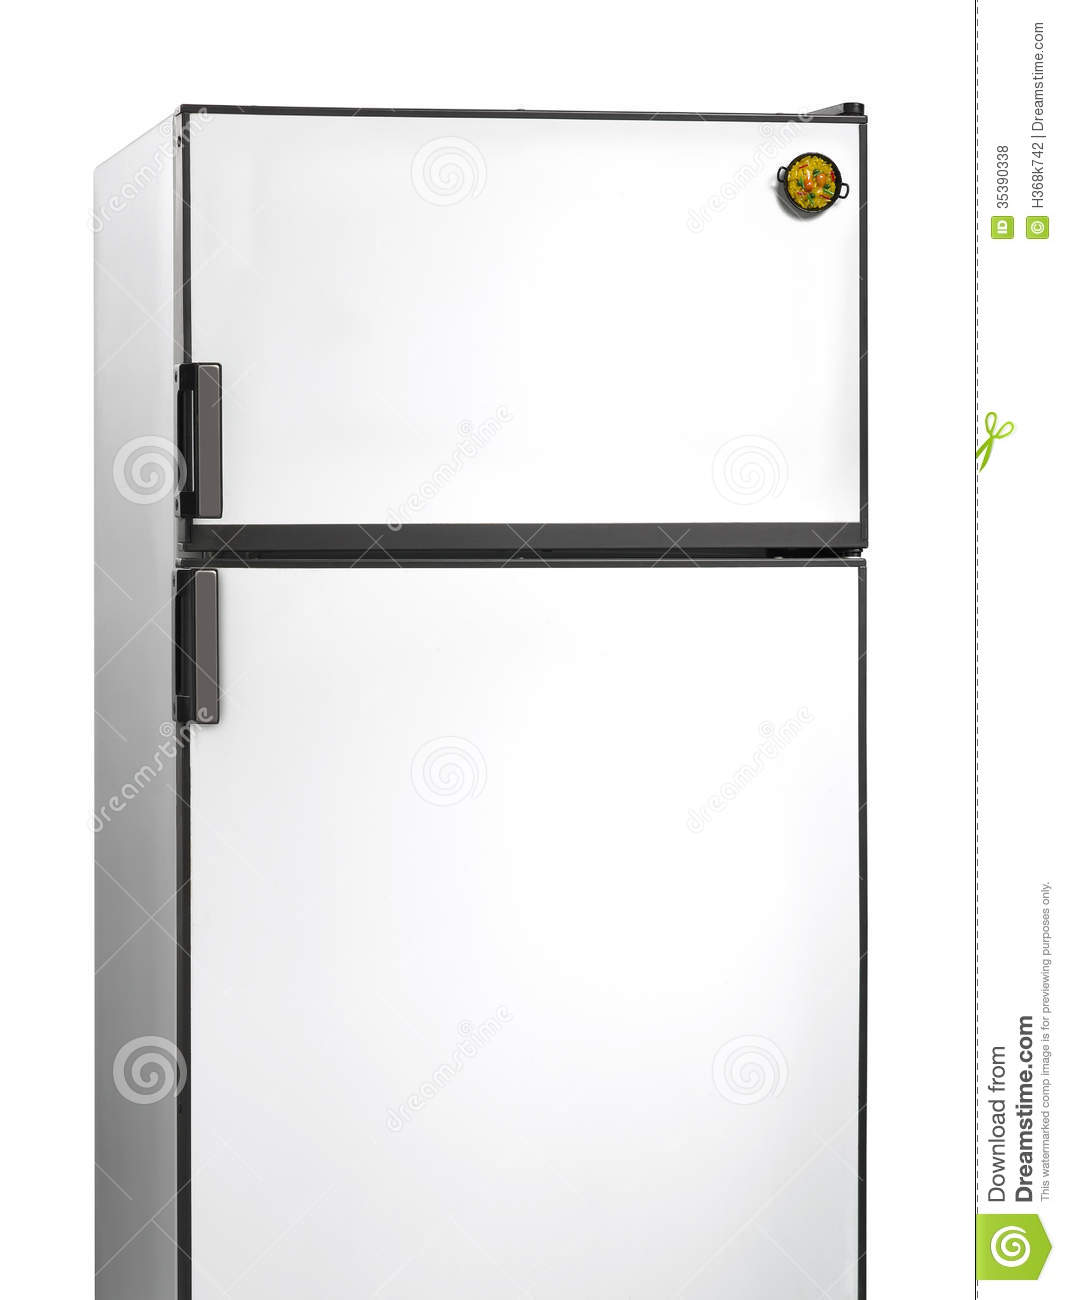 Yellow Fridge Freezer Old Fridge With Paella Plastic Magnet Stock Photo Image